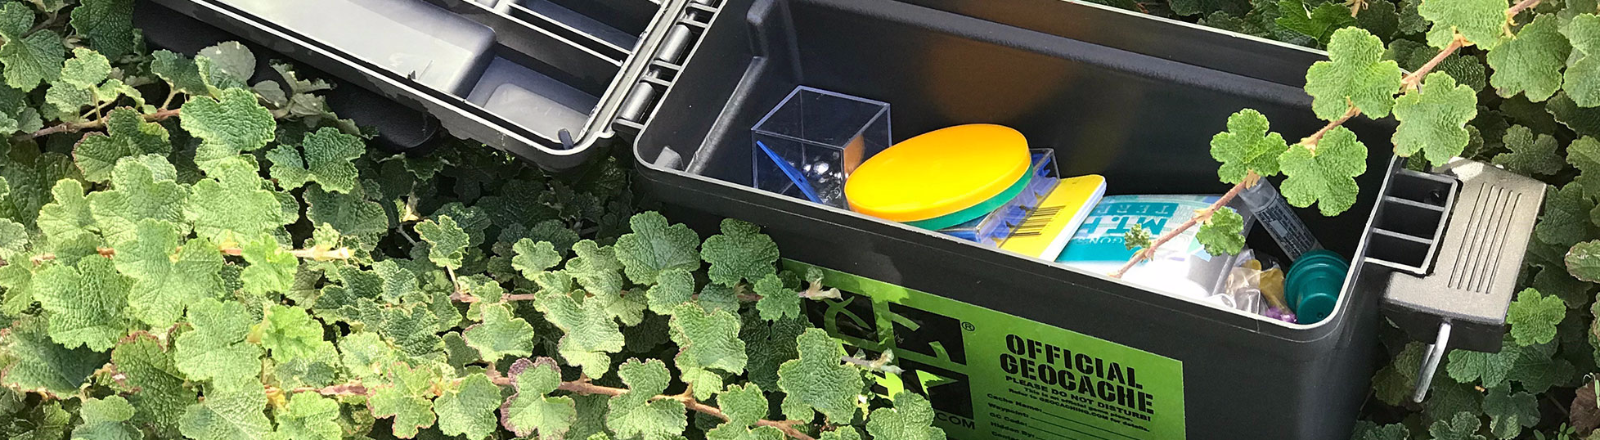 An open Geocaching Box sitting in underbrush contains trinkets for geocachers and the official cache log book with codes